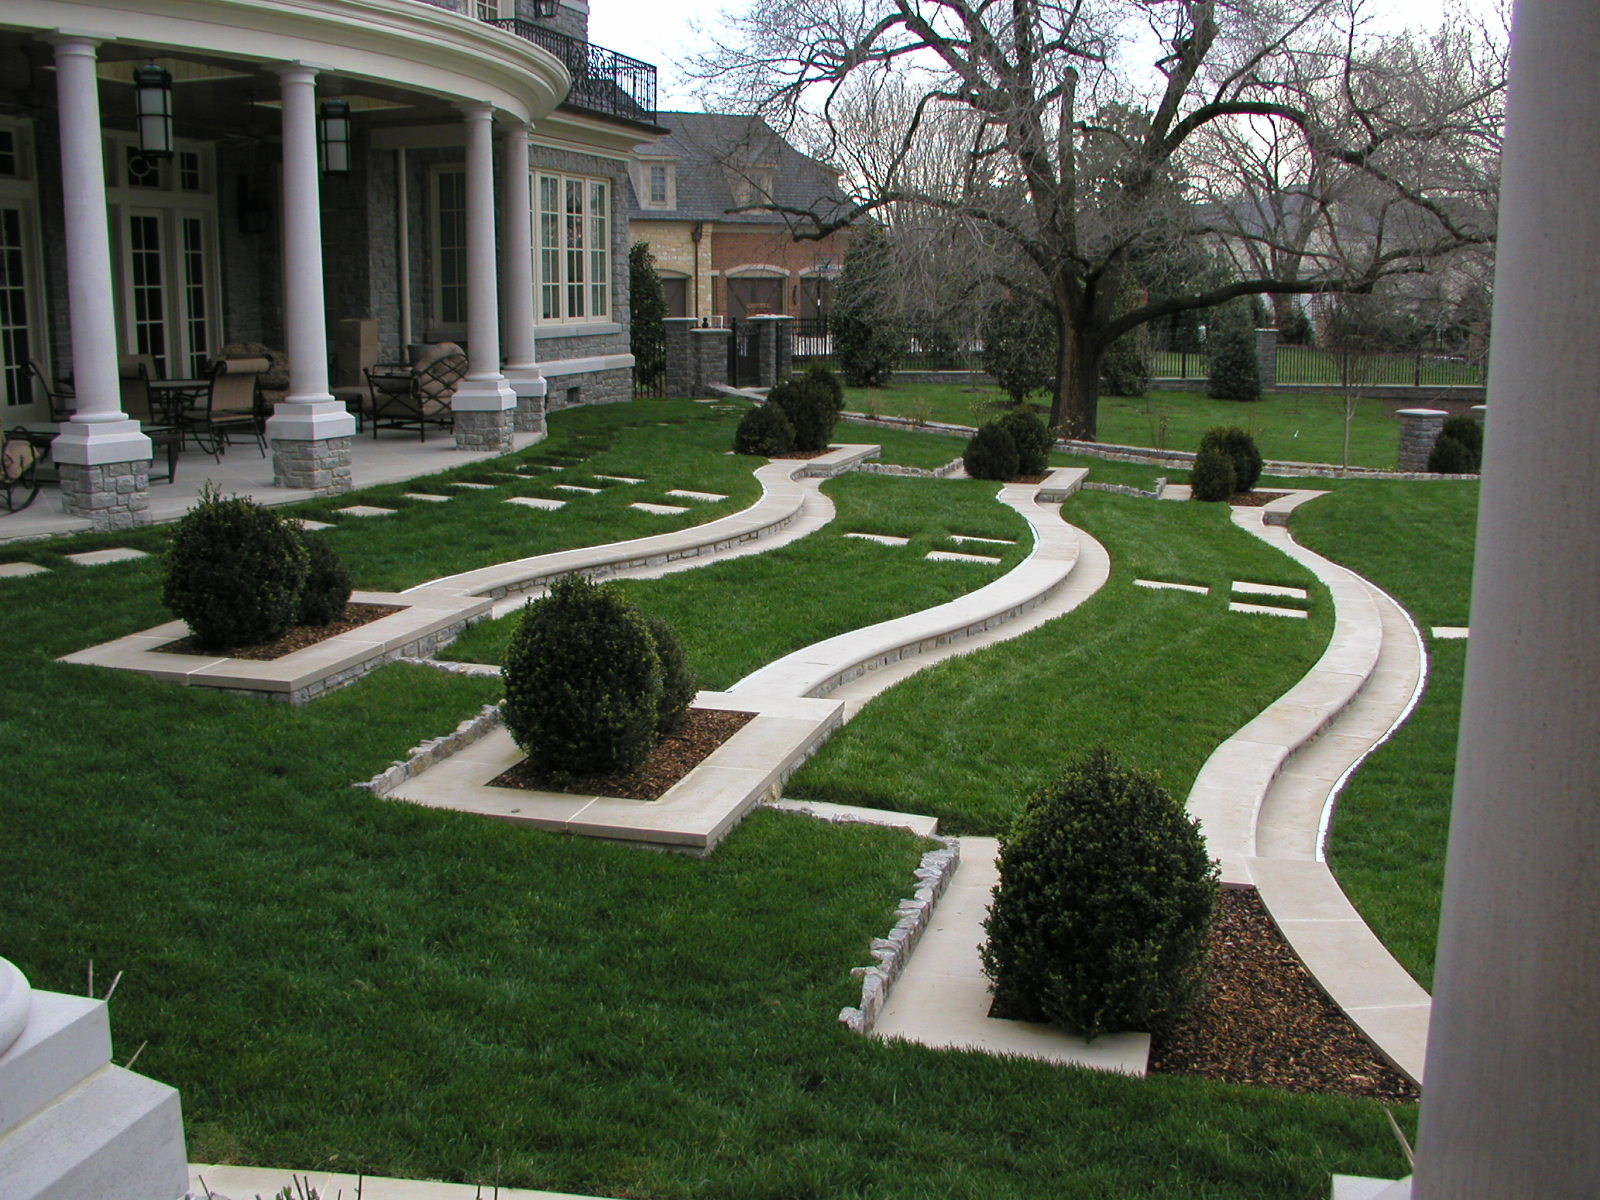 Fabulous Landscape Design - Lessons - Tes Teach regarding Landscape Design Images